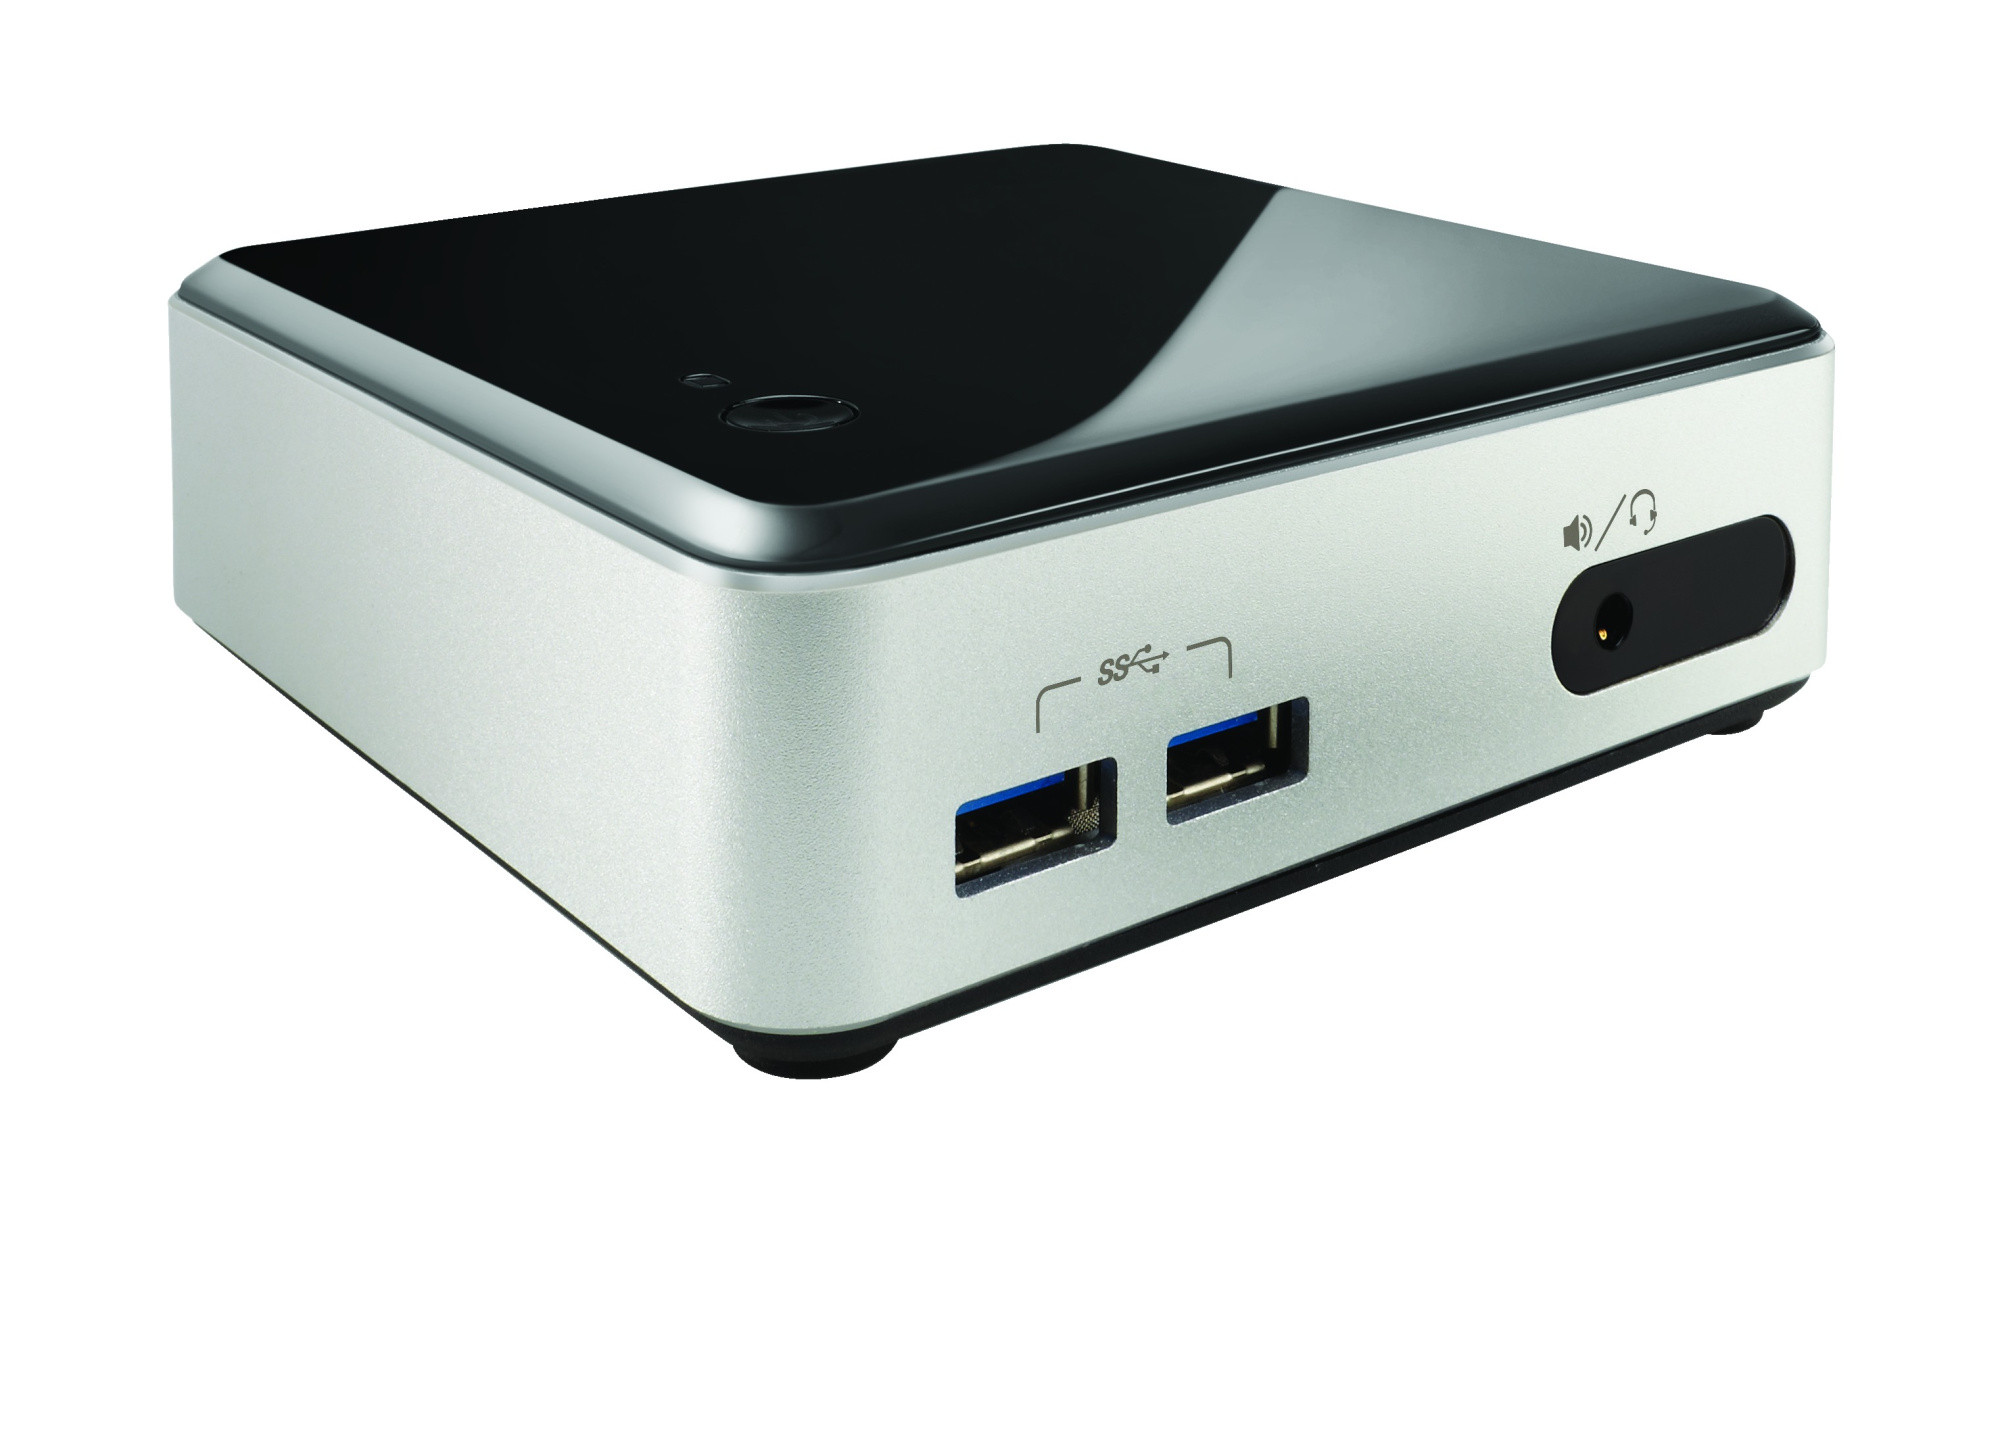 intel nuc d54250wyk3 msata i5 haswell barebone mini pc ebay. Black Bedroom Furniture Sets. Home Design Ideas